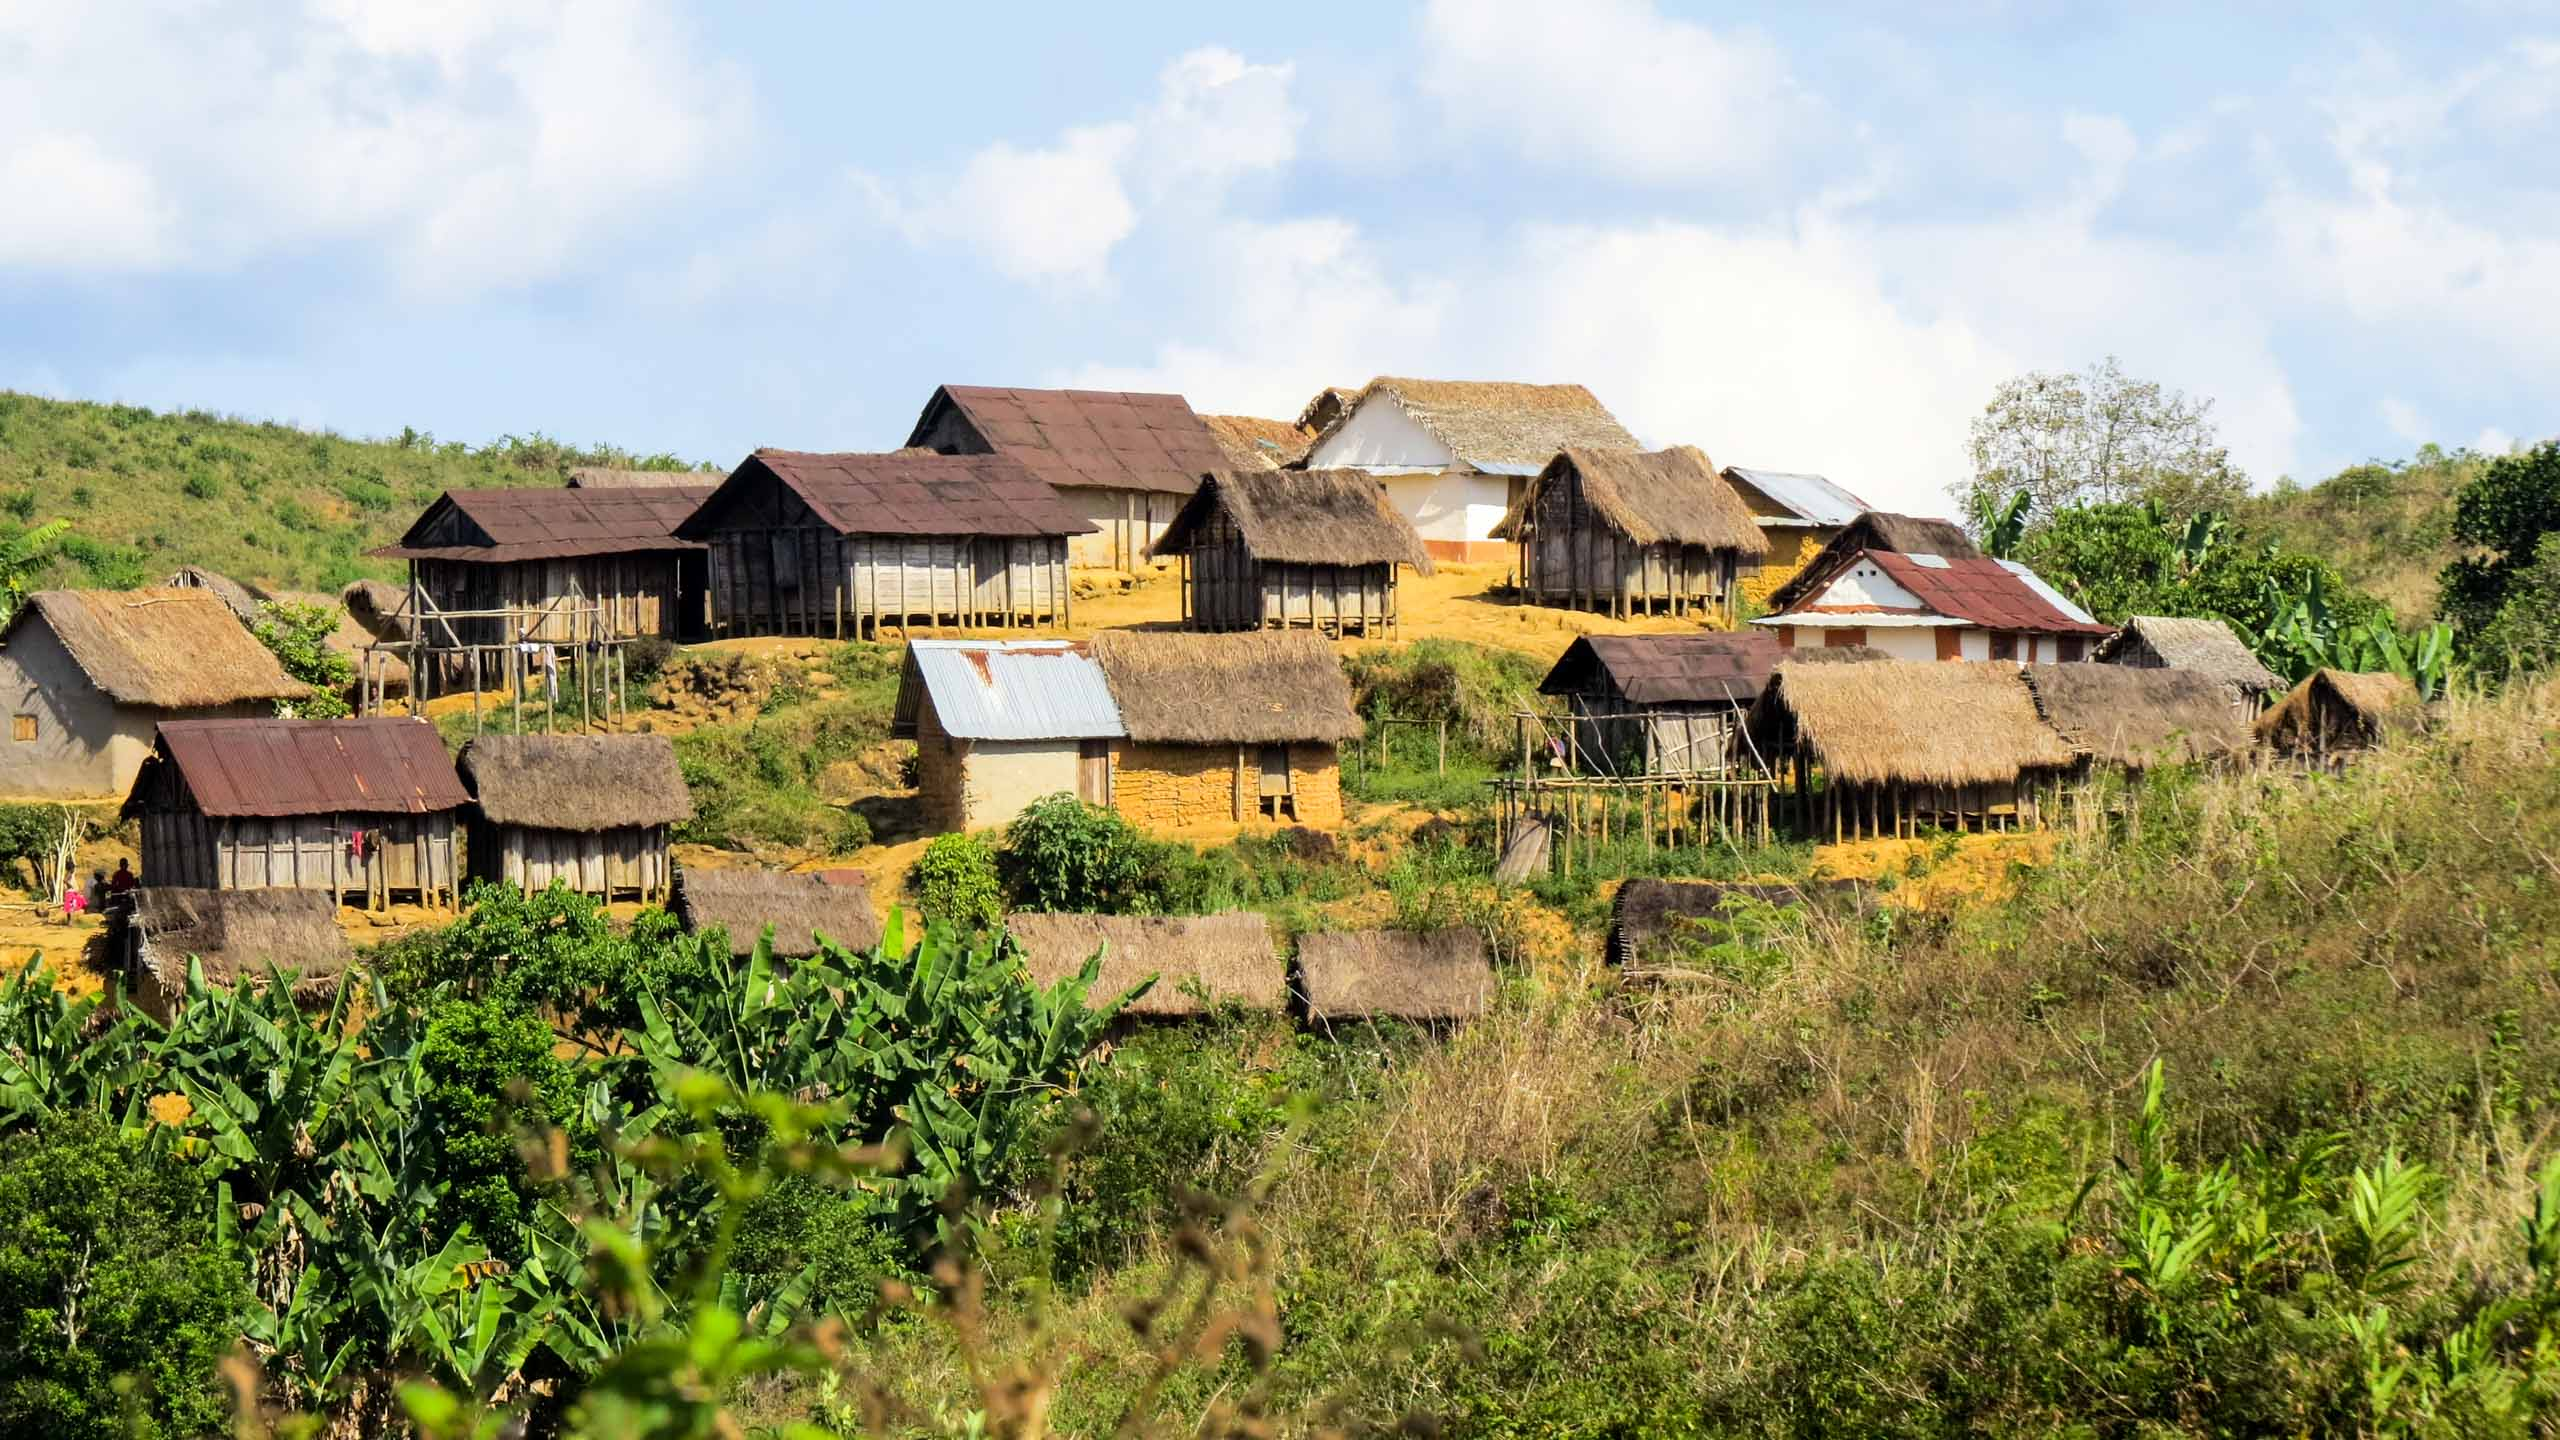 Village on a hill in Madagascar